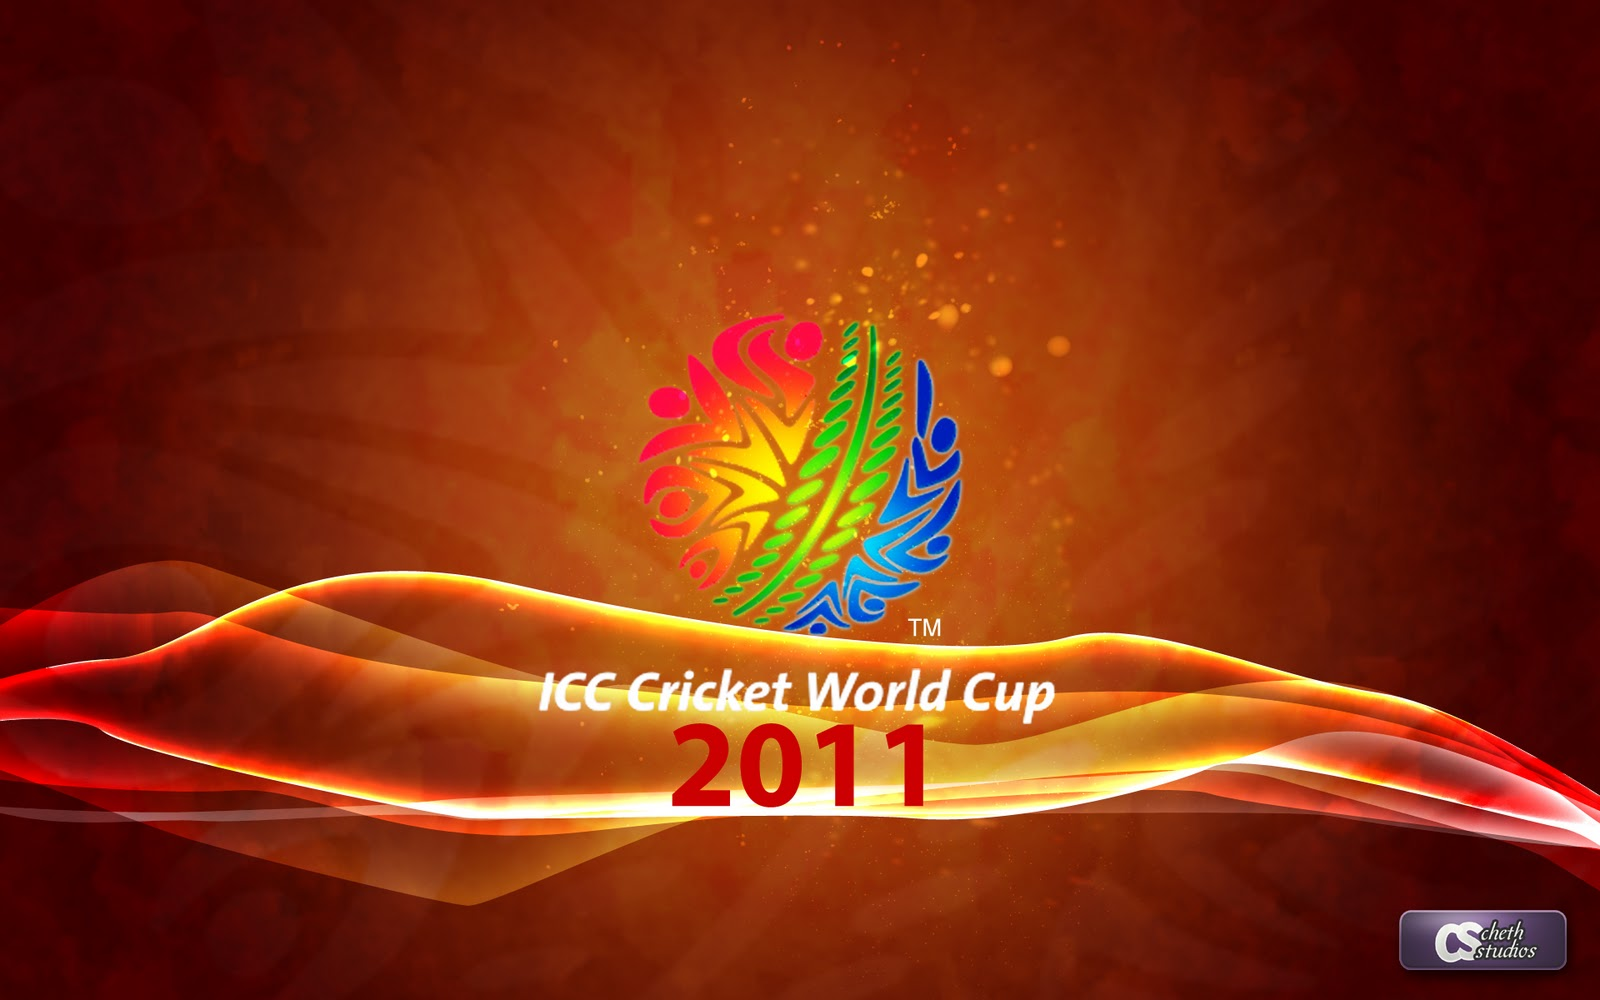 http://2.bp.blogspot.com/_bIDM70GluWY/TUvN436en9I/AAAAAAAAAKQ/uFBBTTMA7_Q/s1600/icc-cricket-world-cup-2011-wallpapers%25252525252525255Bworld4free.in%25252525252525255D%2525252525252B%2525252525252525285%252525252525252529.jpg